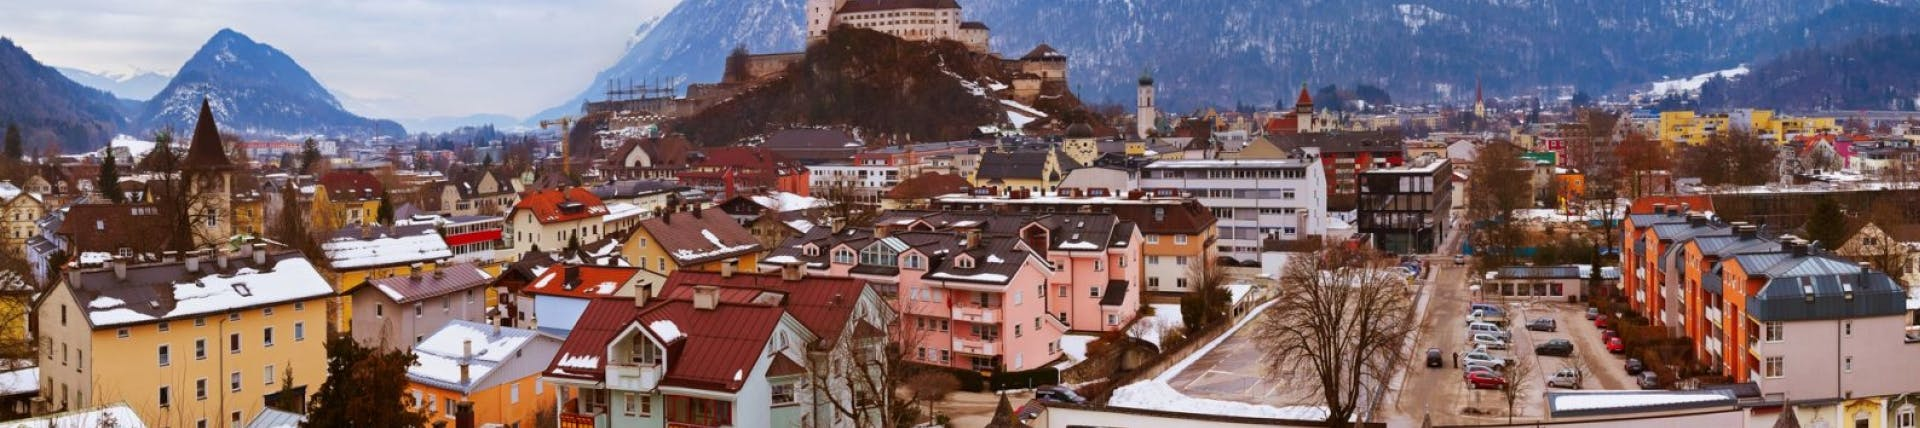 Picture of Kufstein